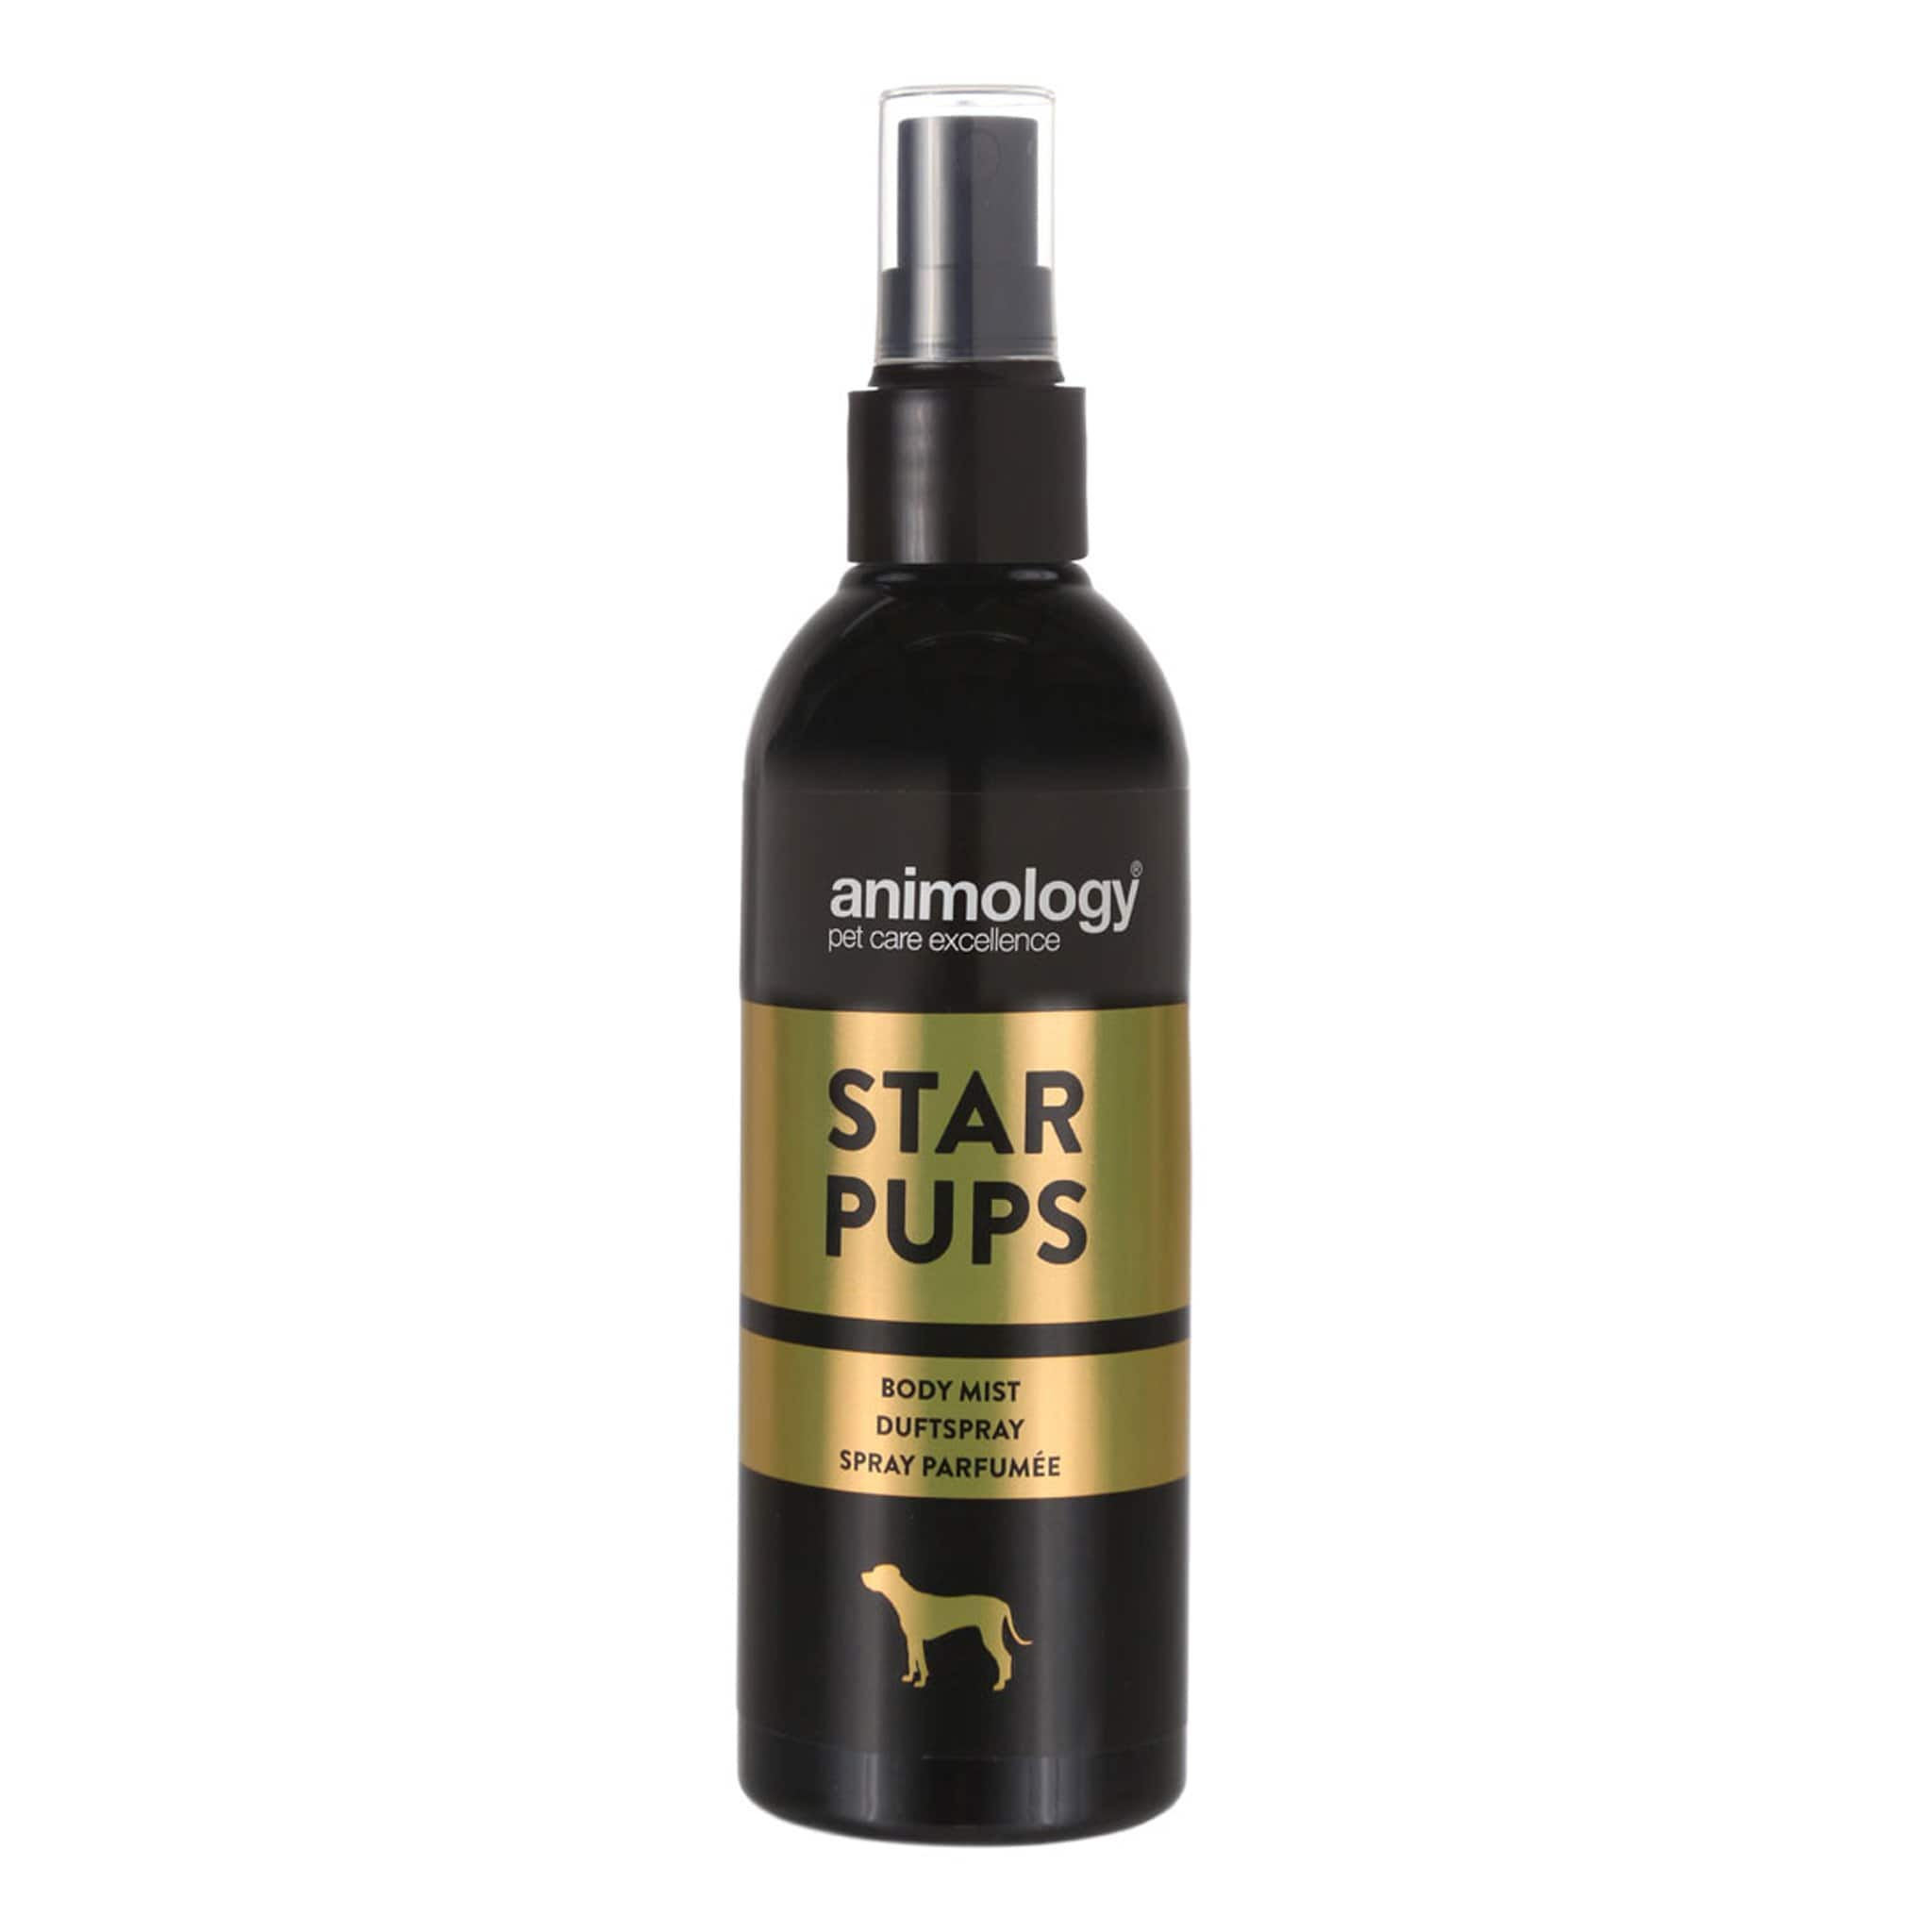 Animology Star Pups Body Mist 150ML 26488.